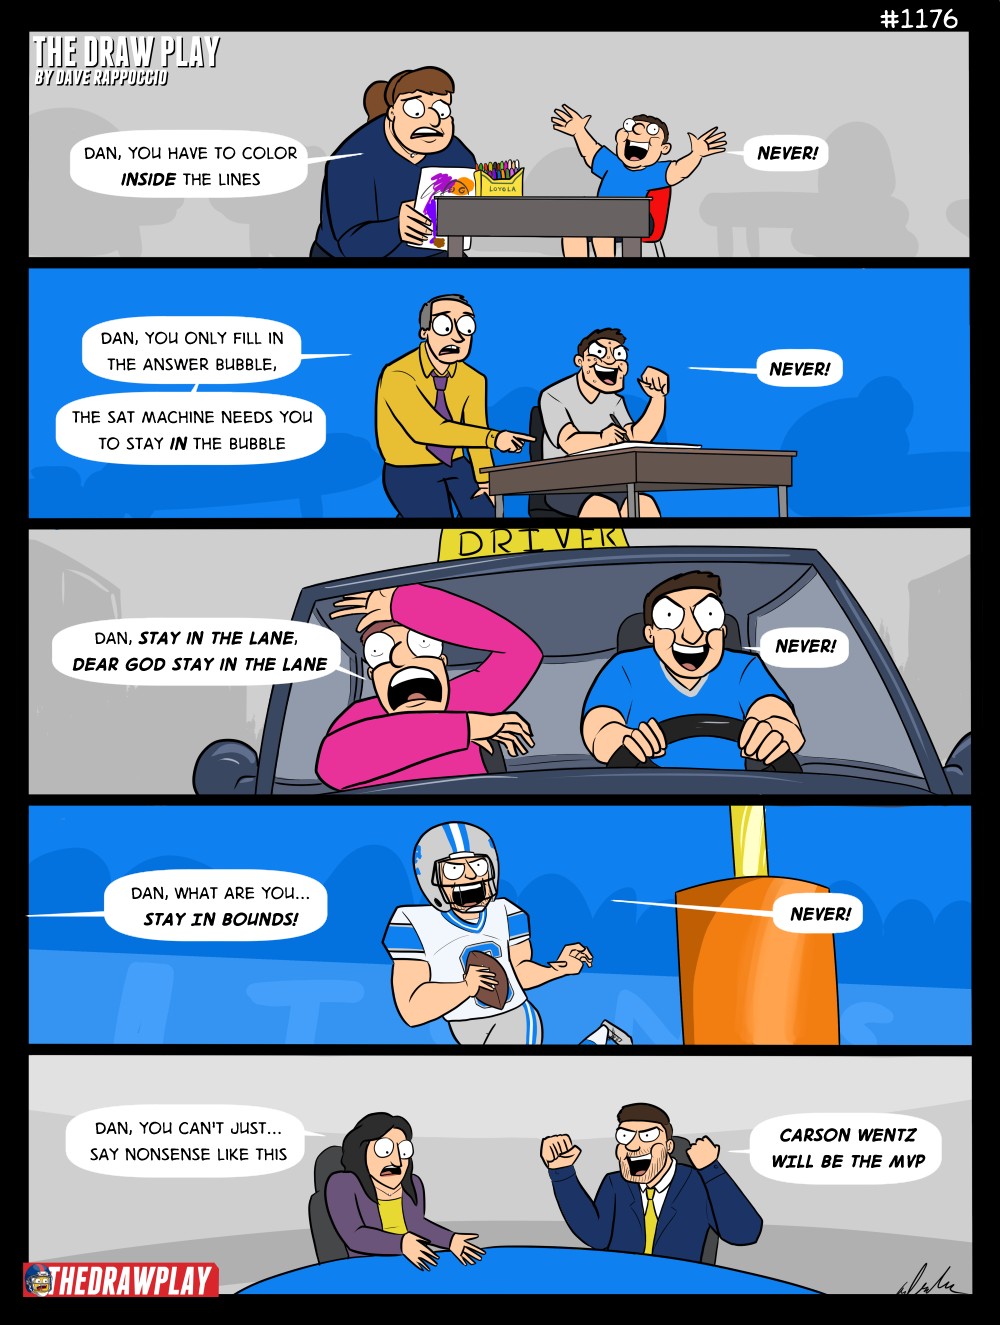 Rodgers please do something I am running out of jokes here I just made a comic about Dan Orlovsky